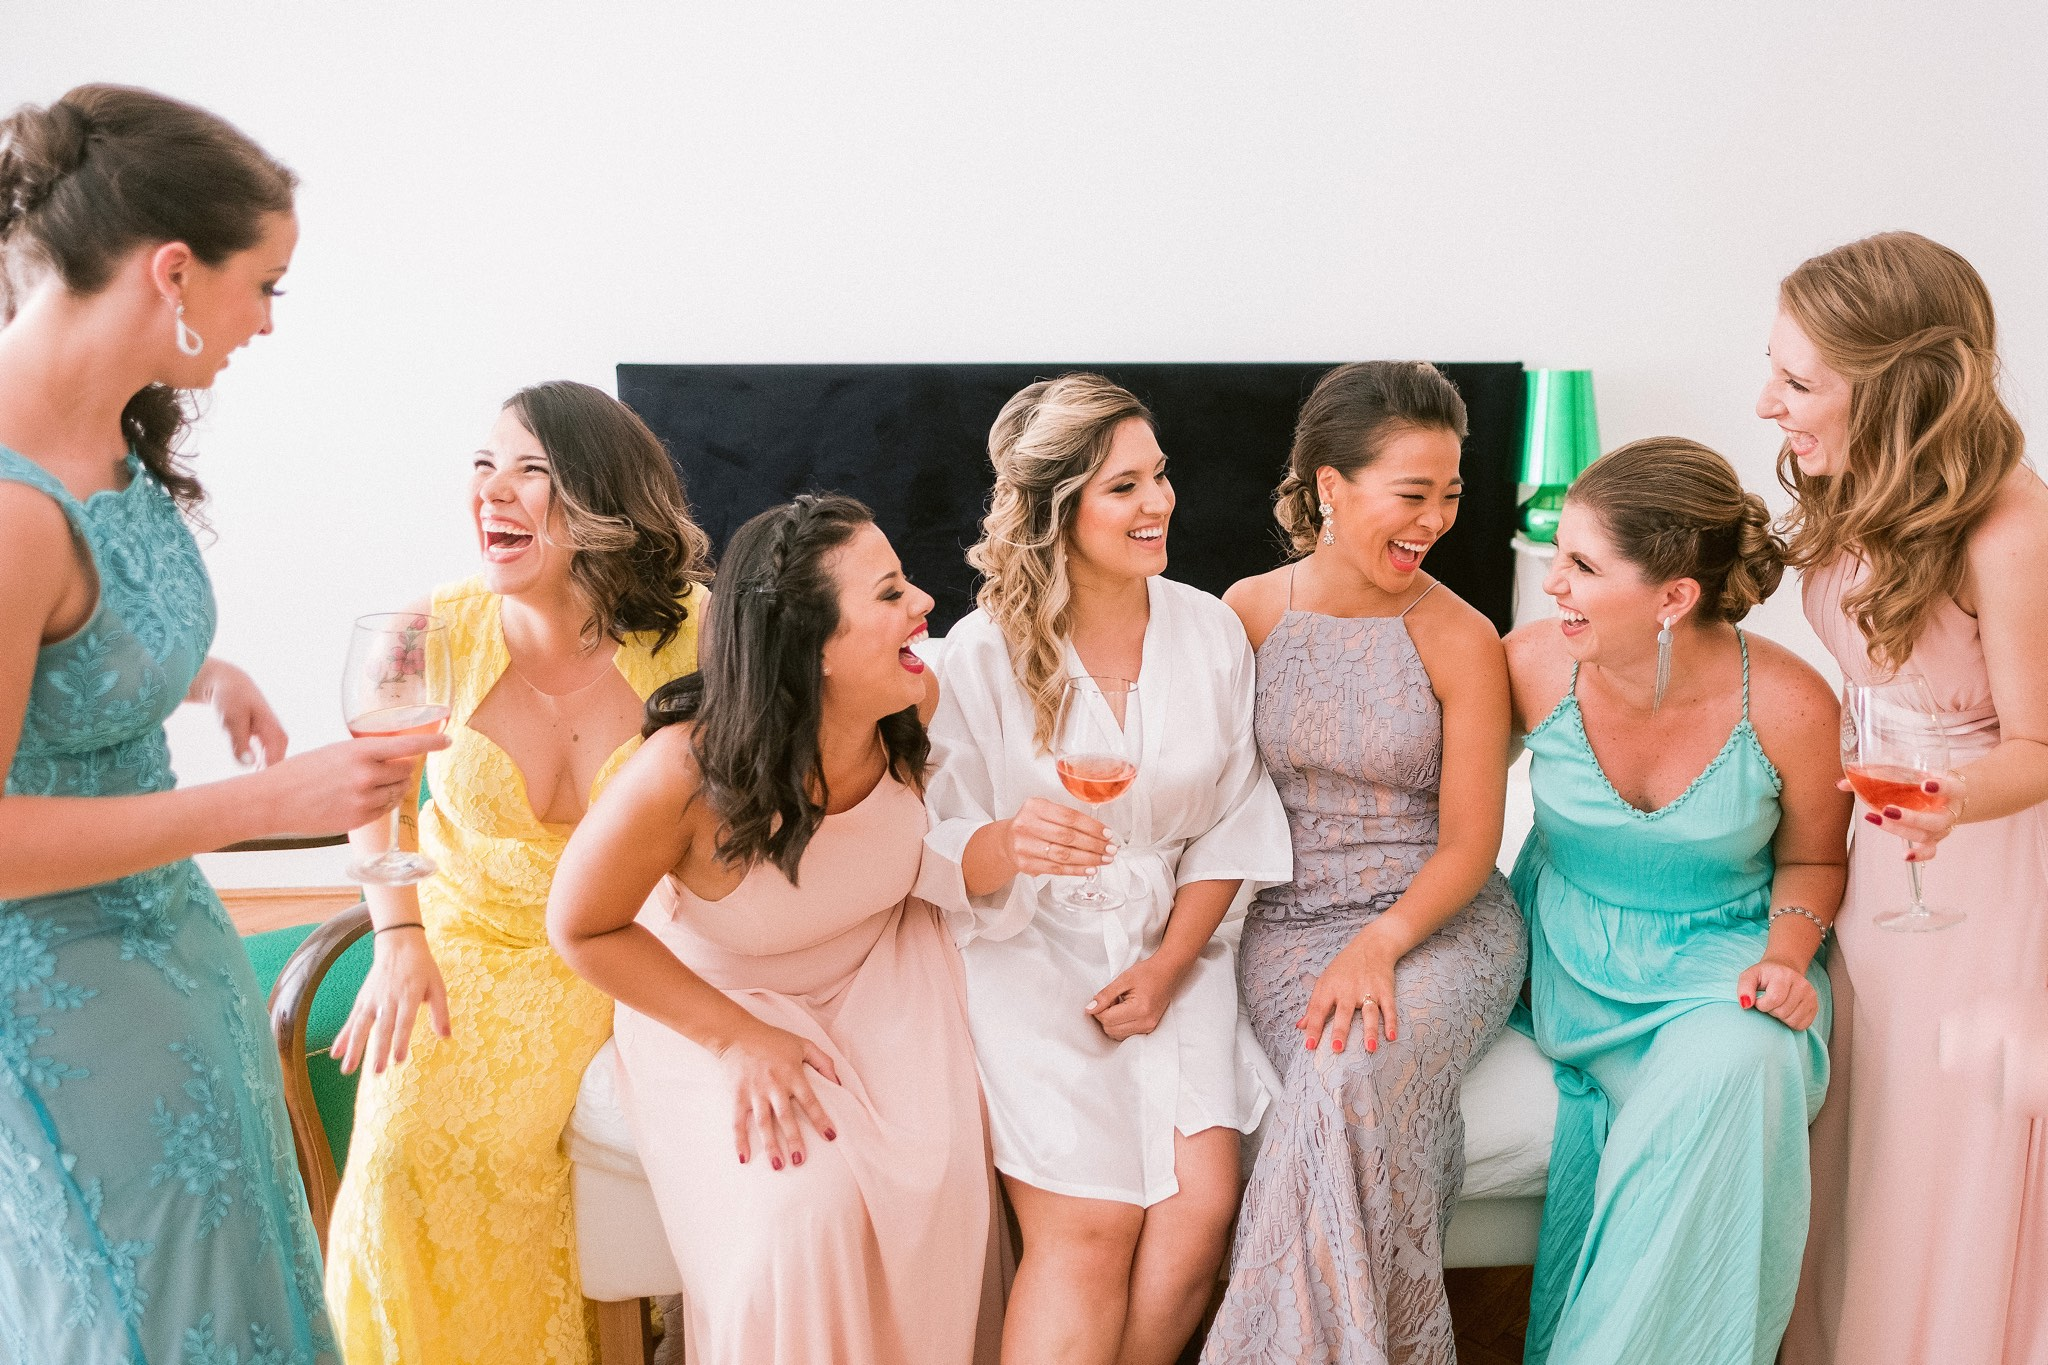 Brazilian Wedding in Hungary - Balazs Lengyel Photographer